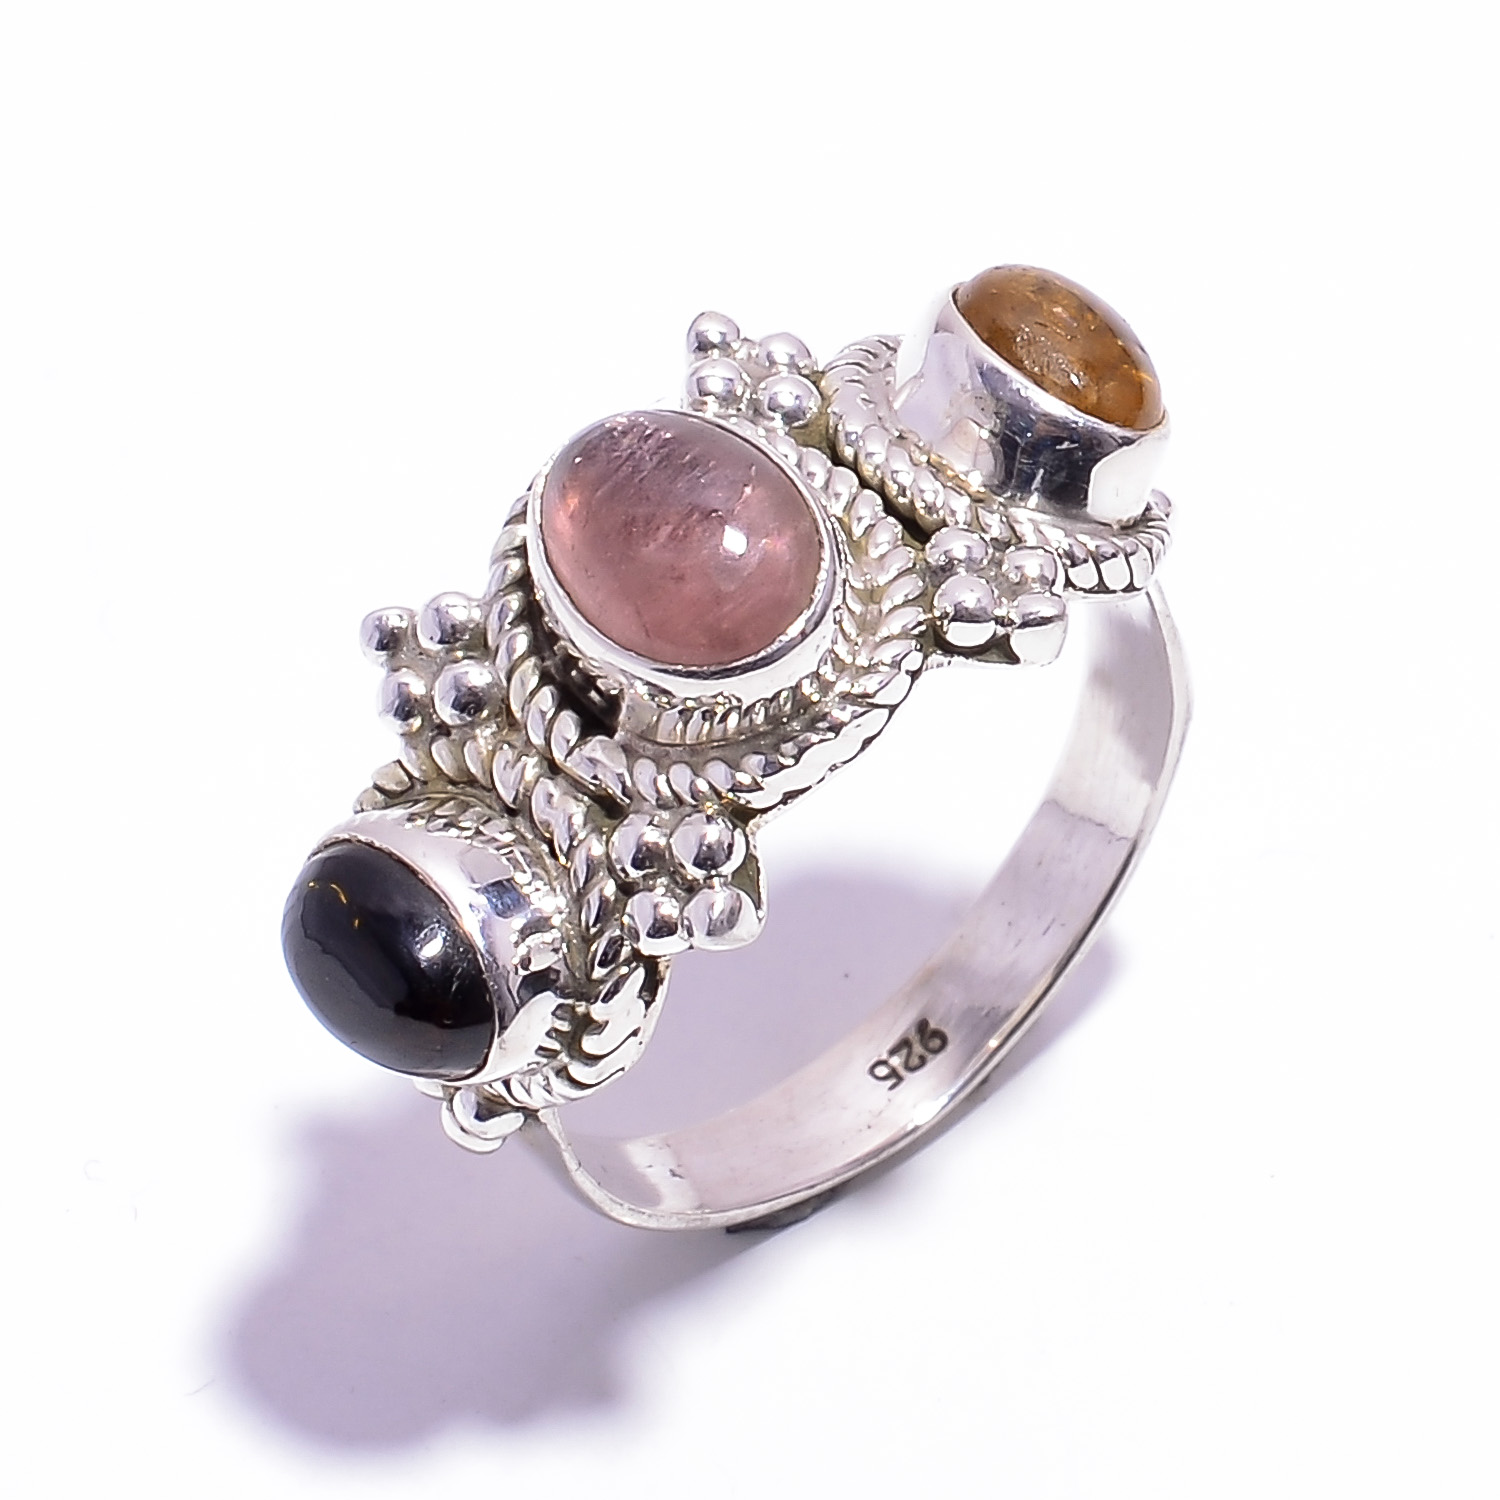 Tourmaline Gemstone 925 Sterling Silver Ring Size US 7.75